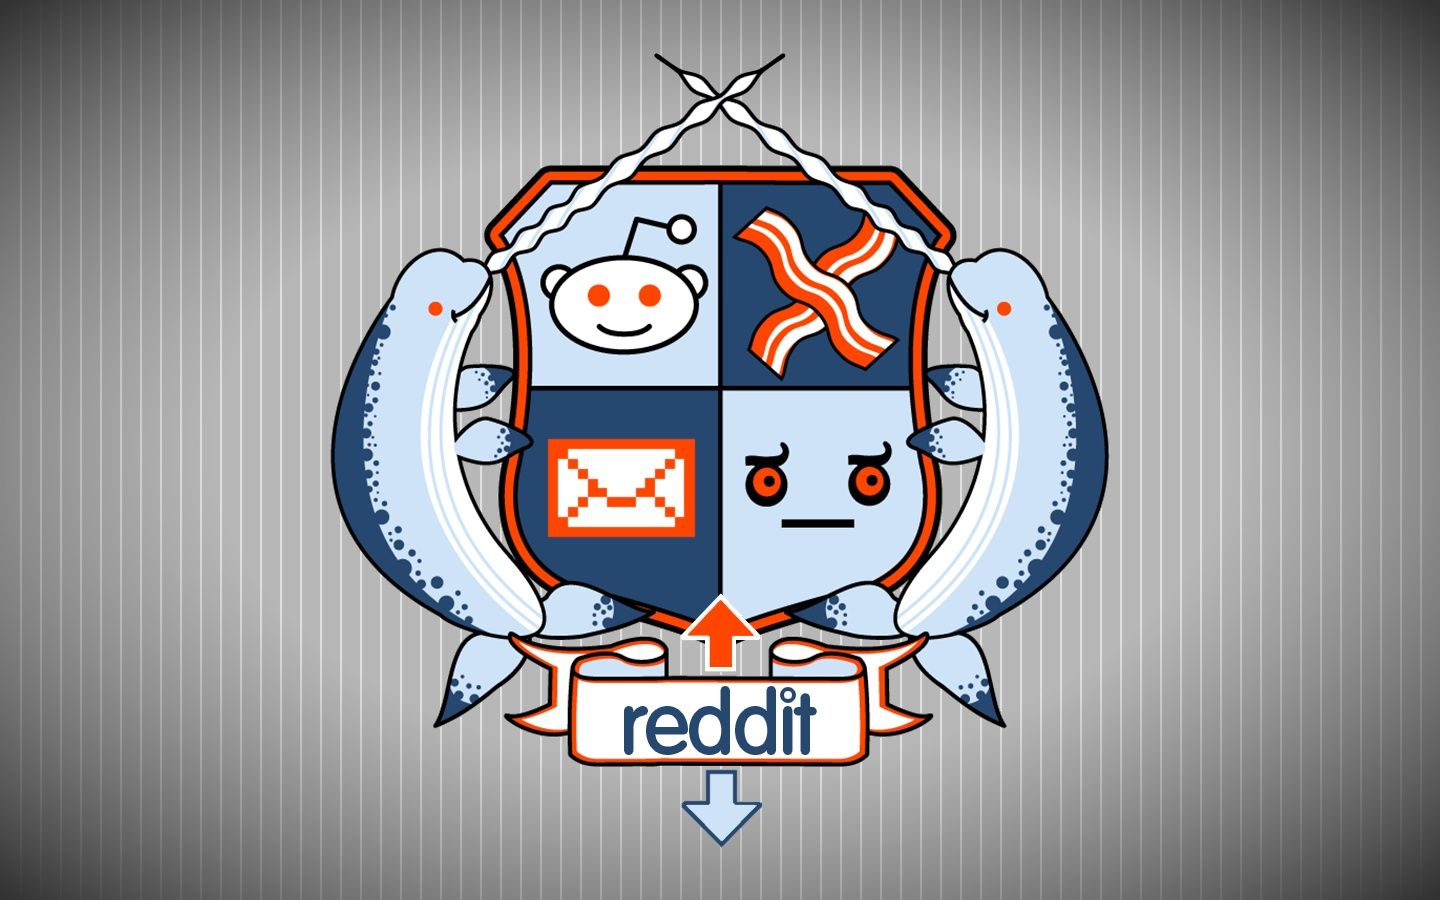 ApkLio Apk for Android Sync for reddit Pro v10.7.25 apk